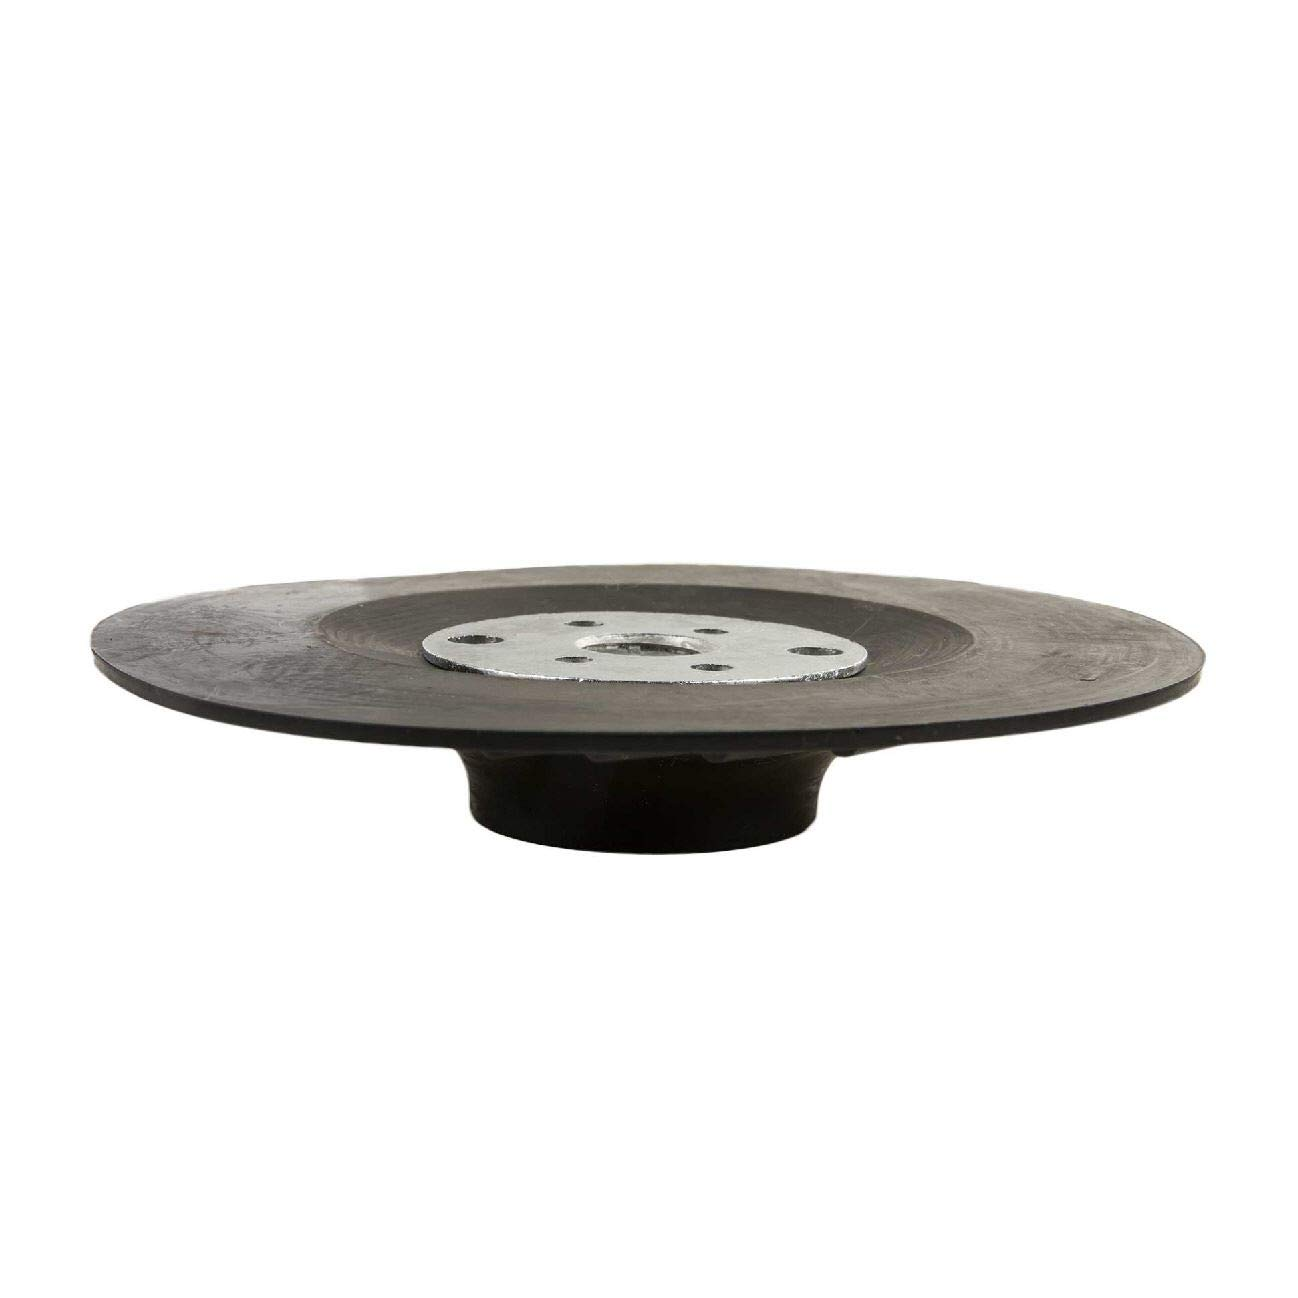 Rubber Backing Pad 115mm for Angle Grinders /& Polishers M14 Thread Sanding Discs